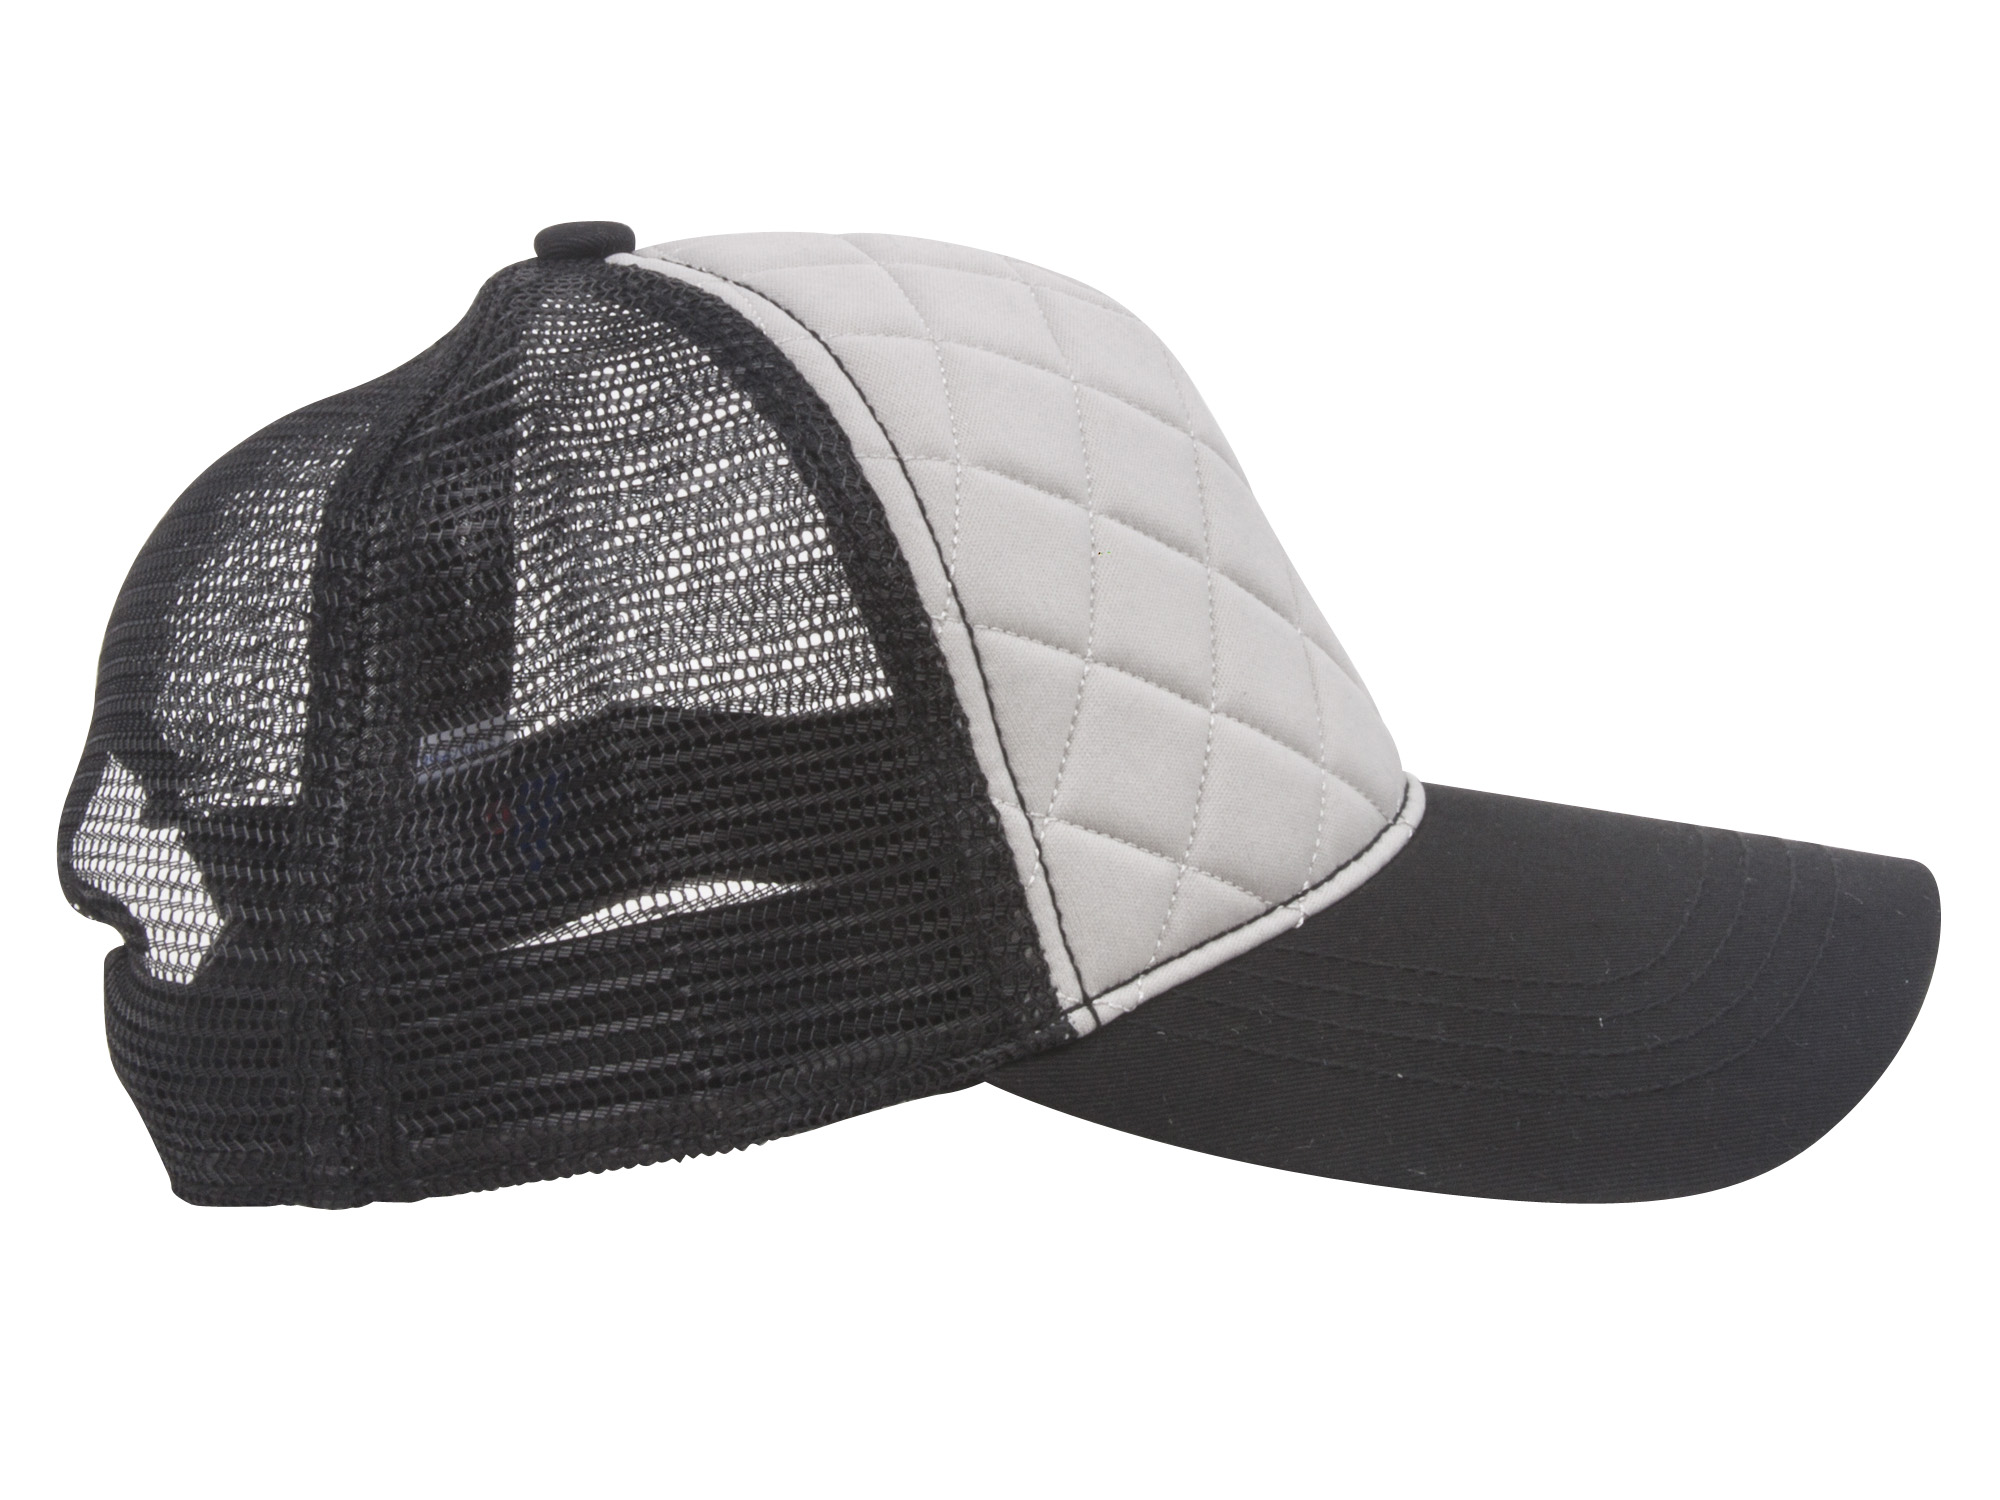 Quilted-Pattern-Fashion-Foam-Front-Trucker-Cap thumbnail 5